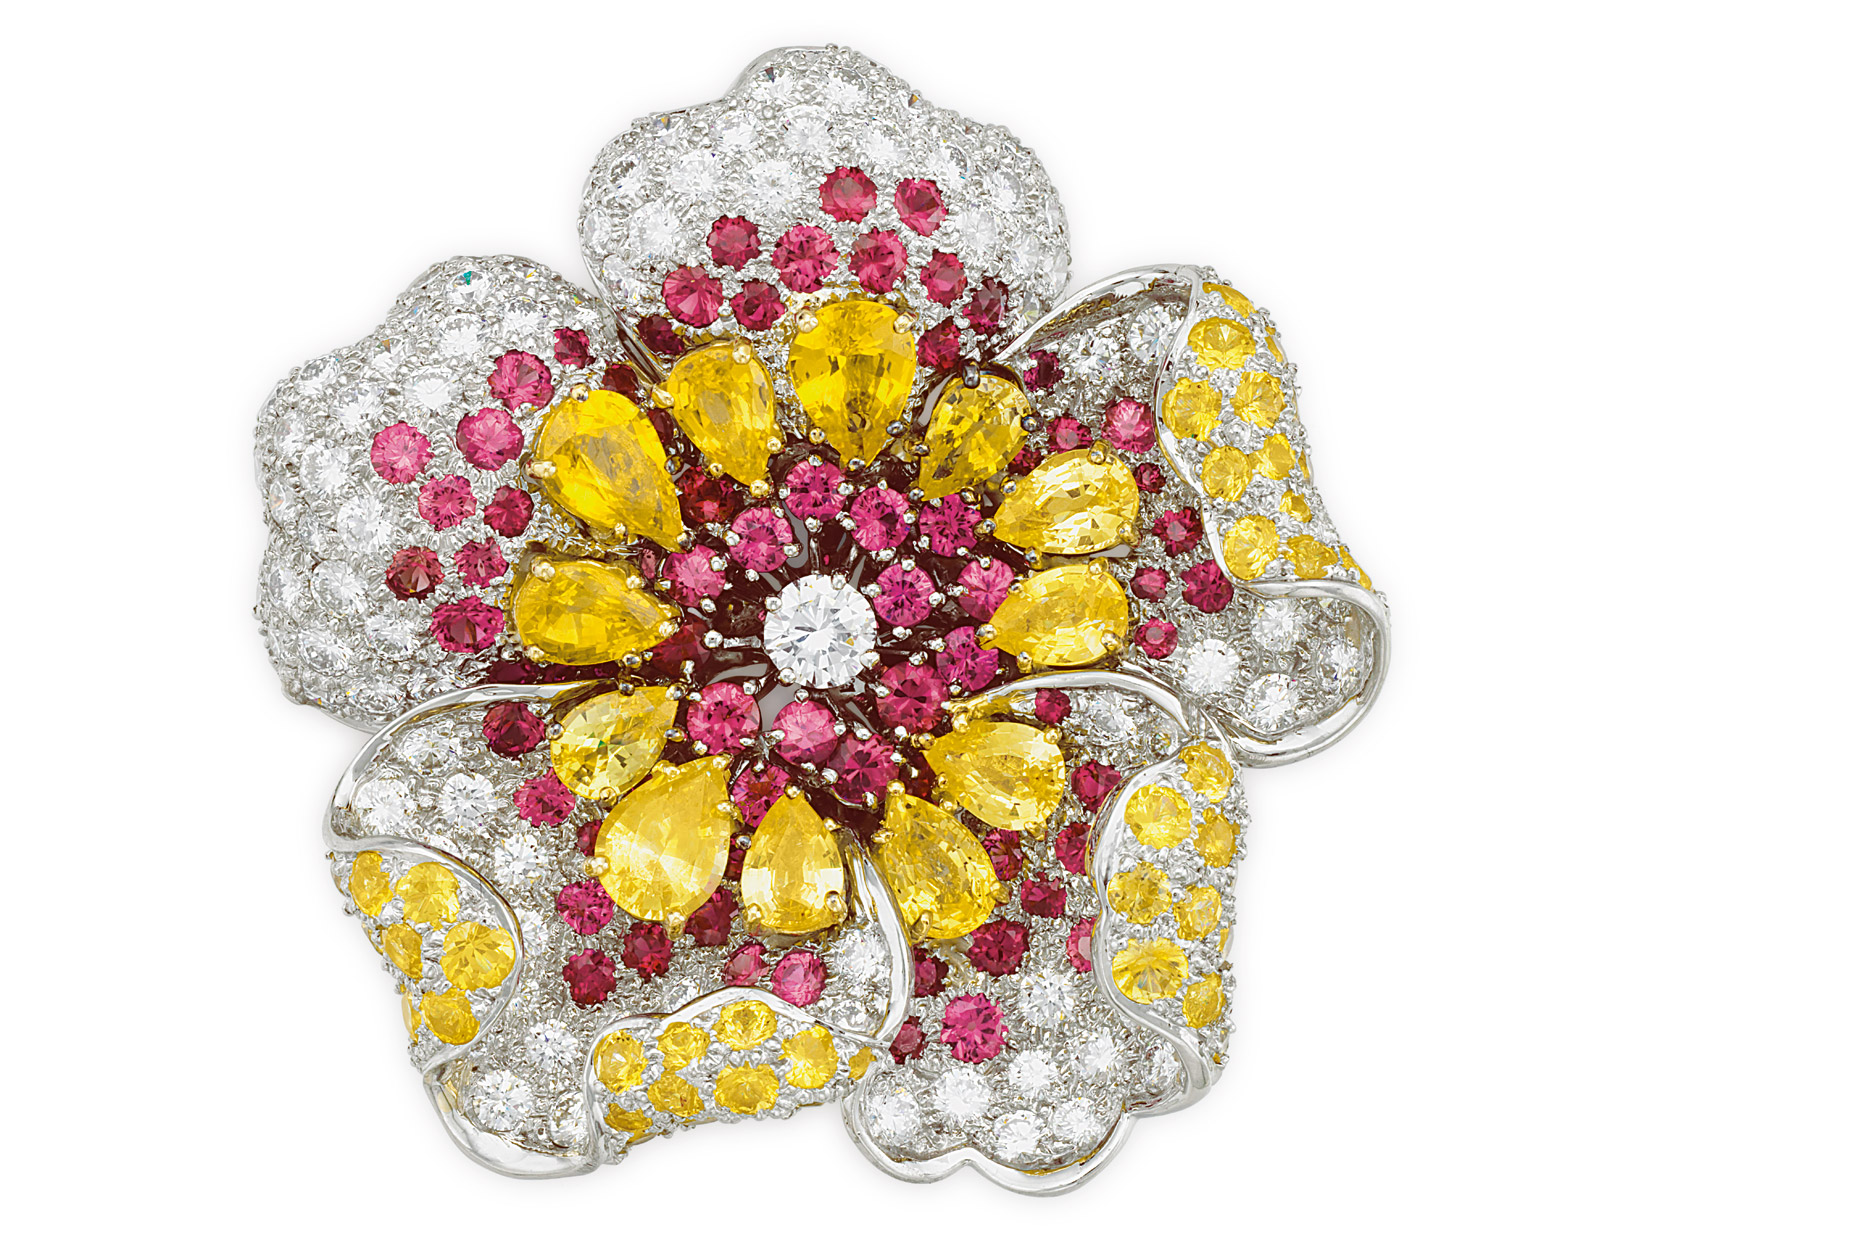 A fancy jewelry  Brooch with pink yellow and white diamonds.